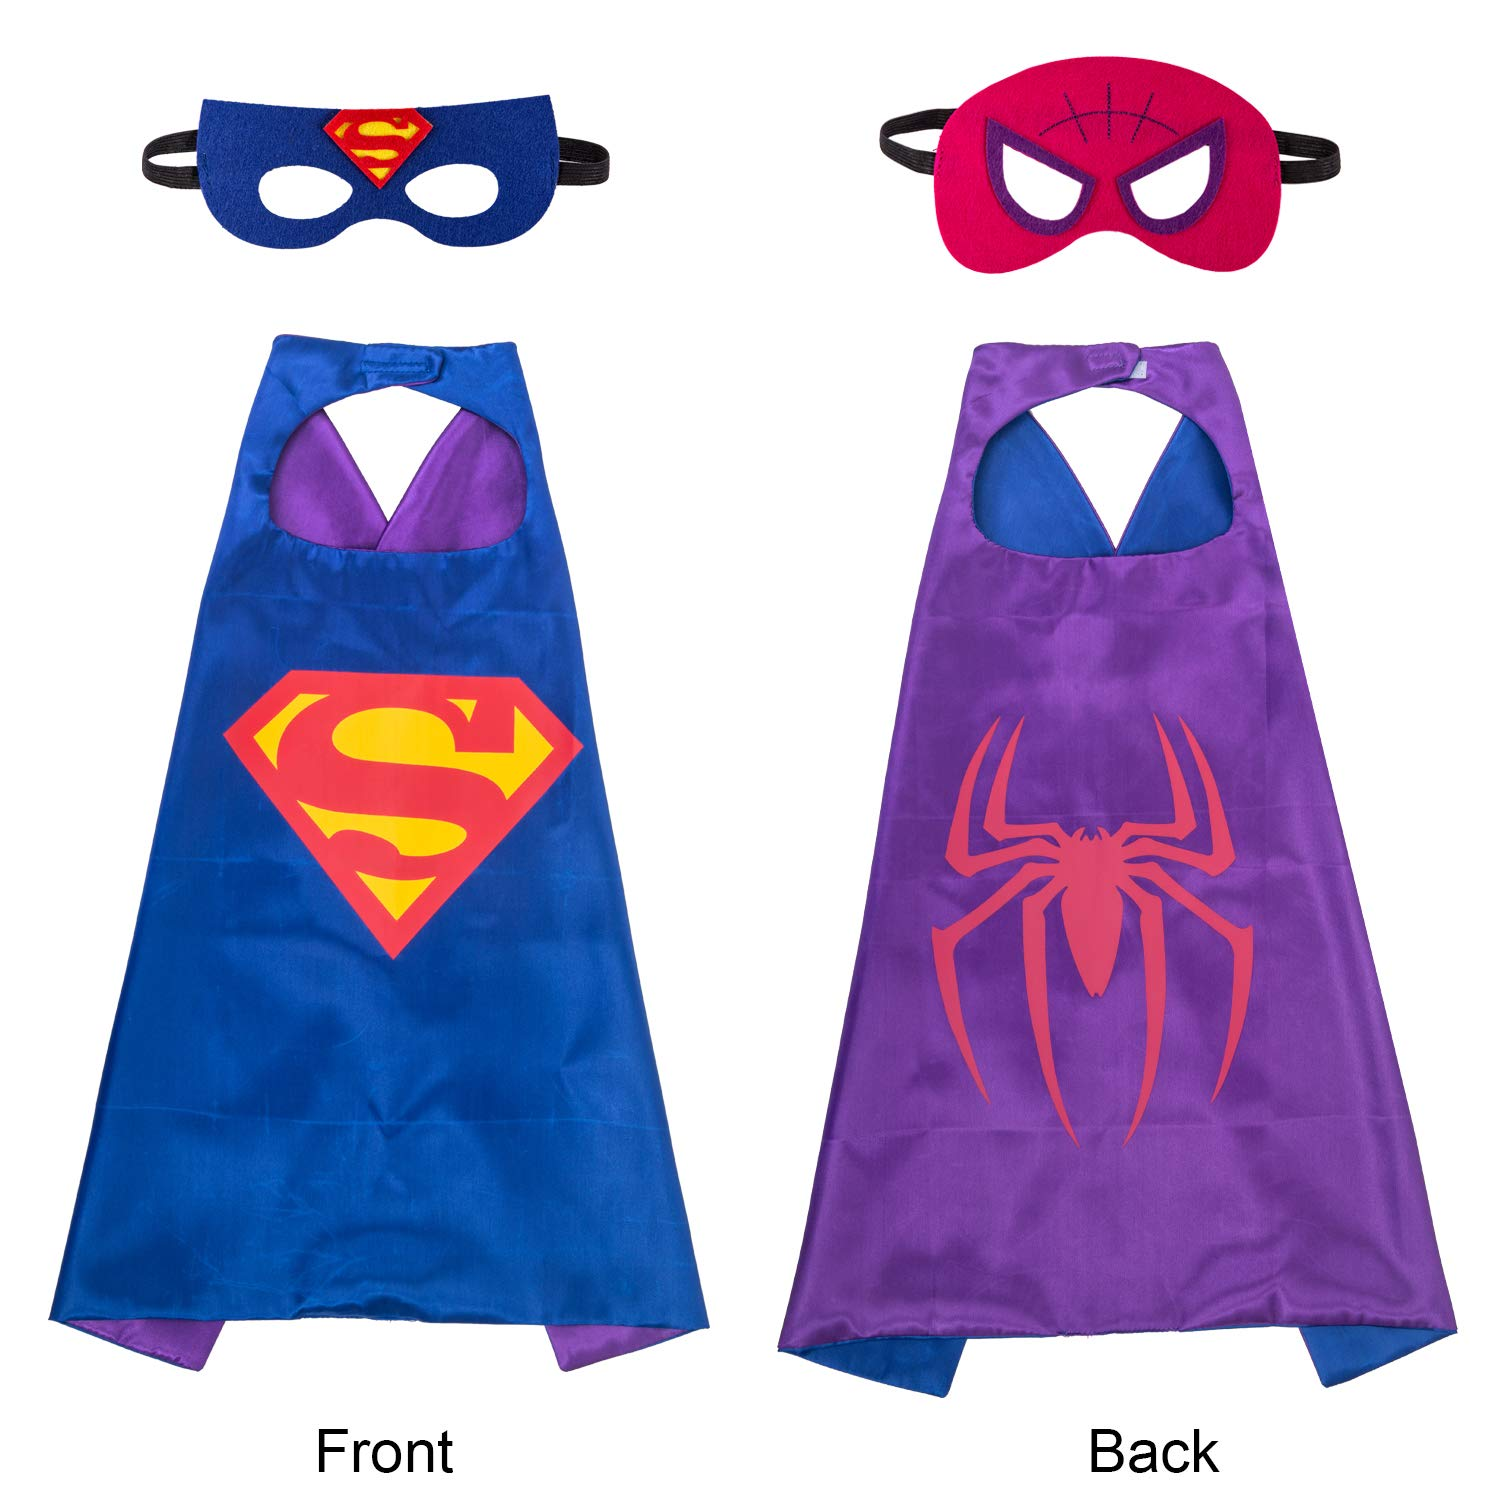 amasky Superhero Dress Up Costume Set, Double-Sided Satin Capes with Felt Masks for Kids, One Set Plays Double Roles (Superman-Spiderman)